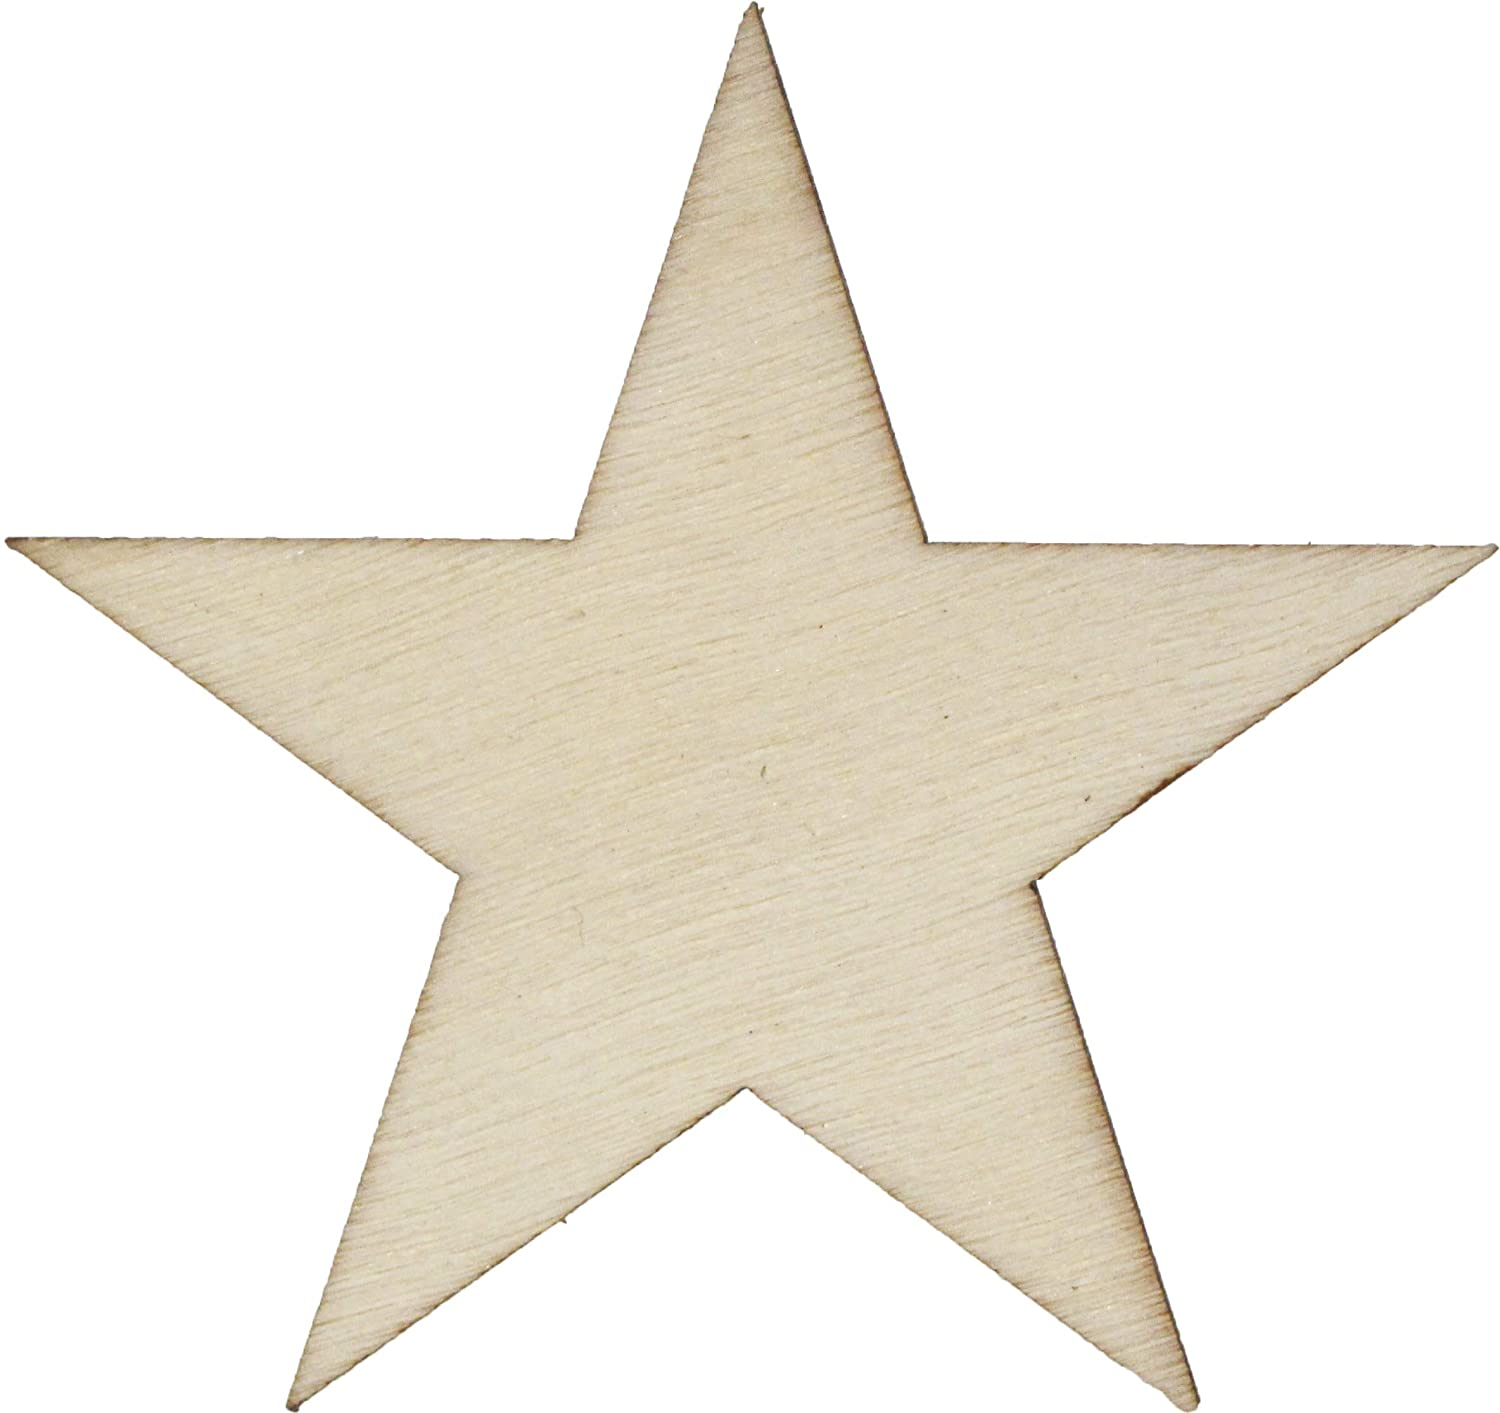 50 Small 1.75 inch Size Wood Stars 1-3/4 inch